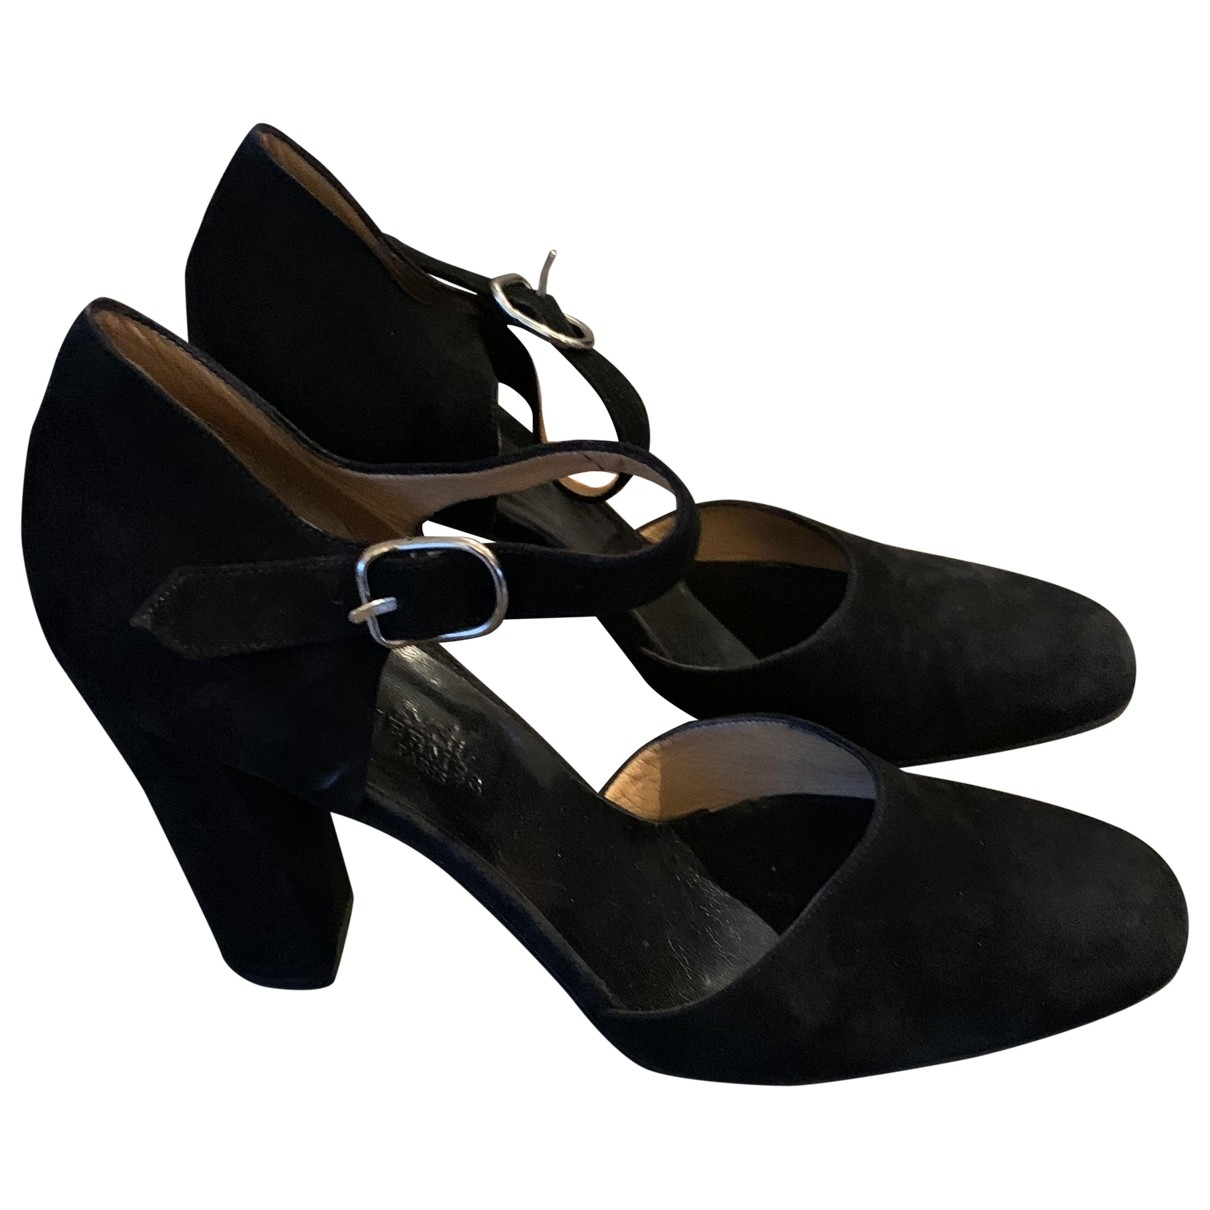 Hermès \N Black Suede Heels for Women 39.5 EU